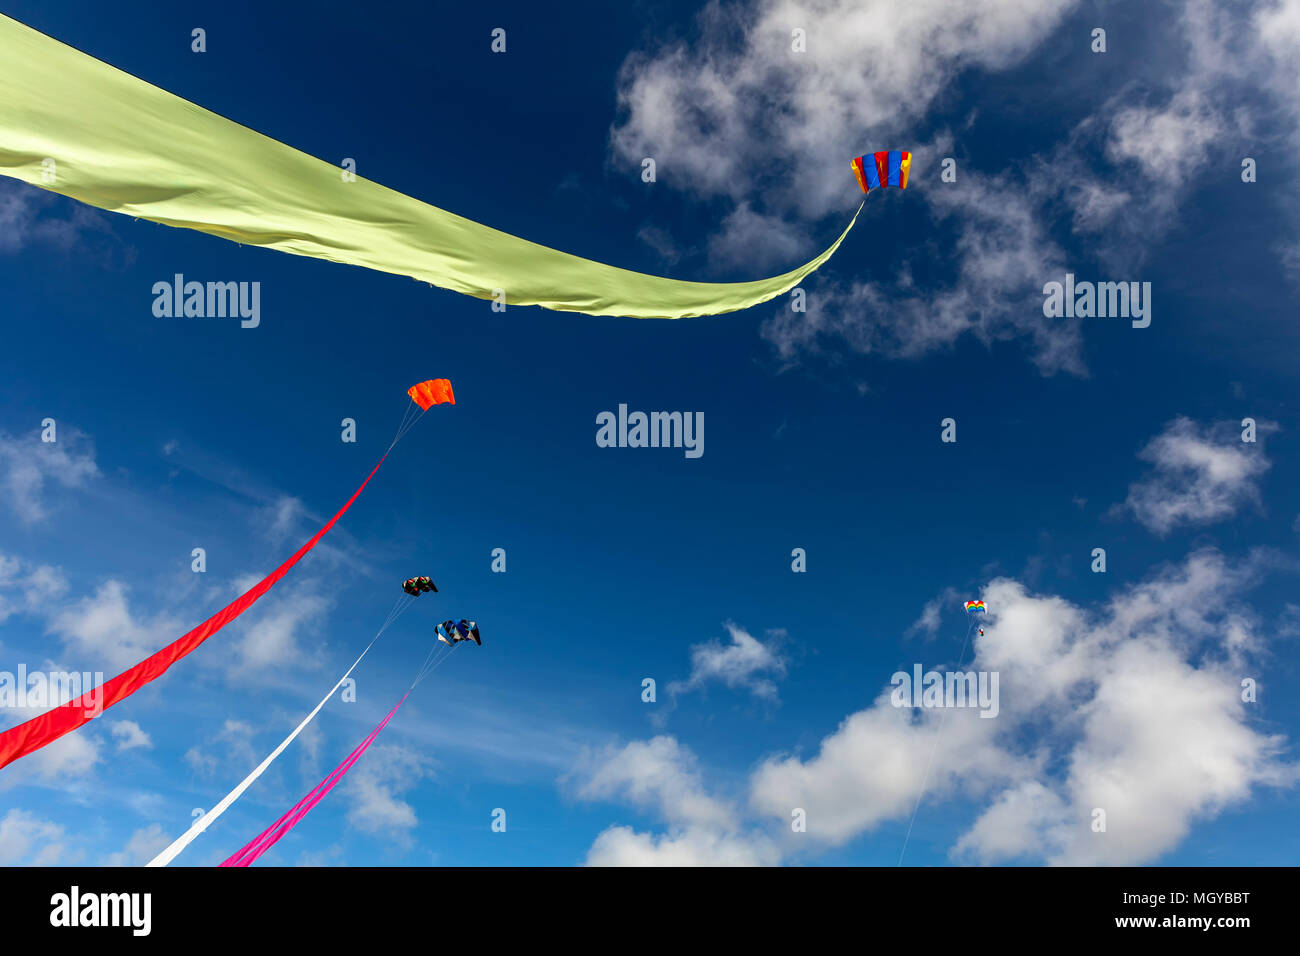 5 Kites flying high in a blue summer's day sky - Stock Image